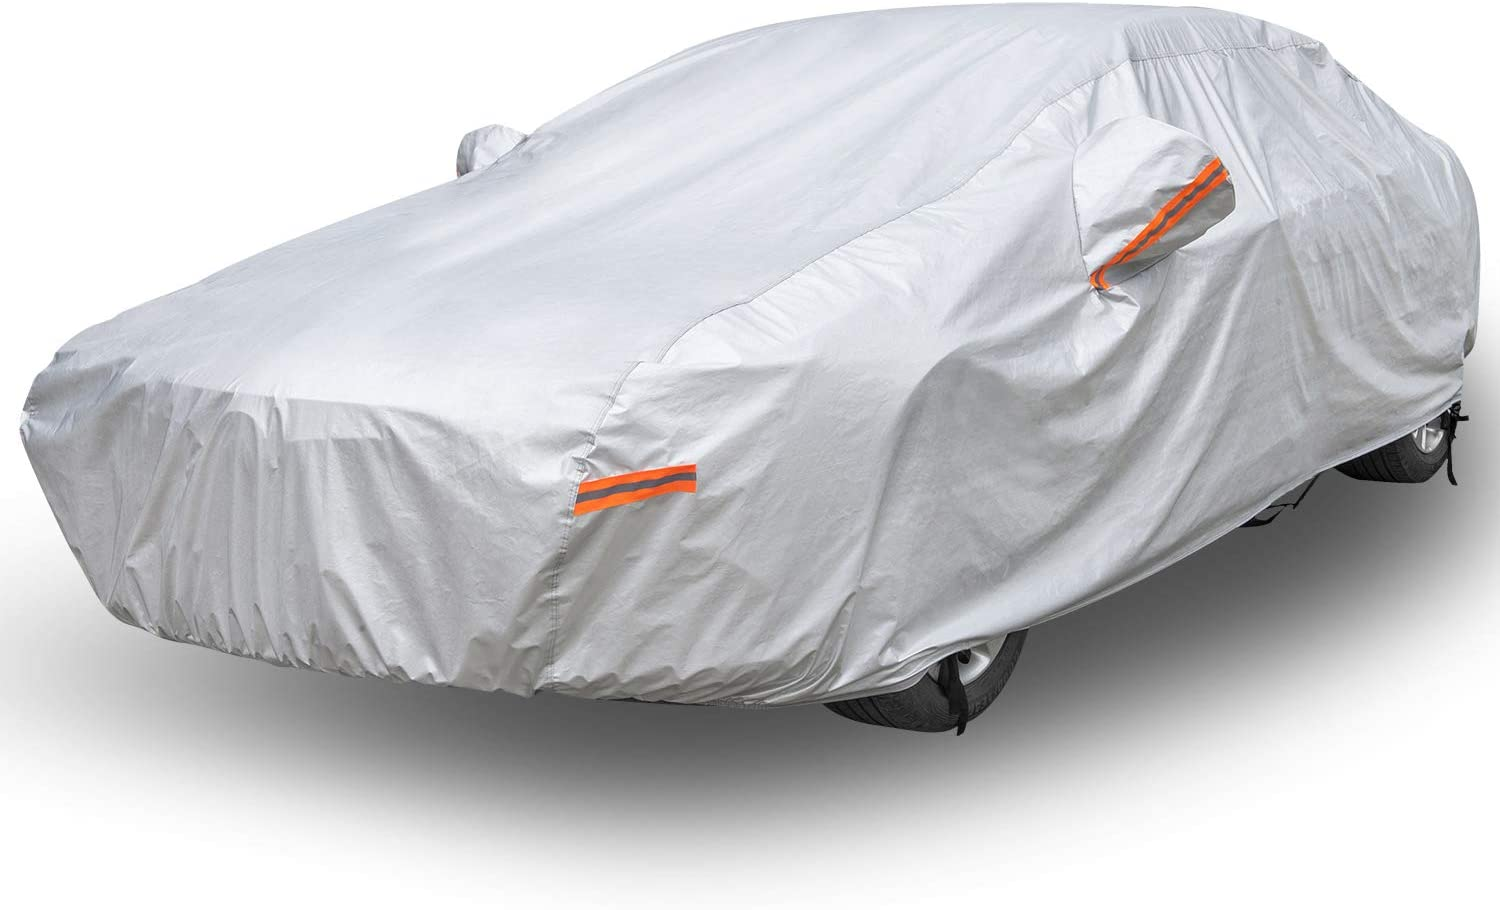 Car Cover Waterproof All Weather for Automobiles, Morhept 6 Layer Vehicle Cover Universal Outdoor Heavy Duty Full Car Covers, Scratch Resistant UV Protection Auto Cover for Sedan, Fits up to 178""